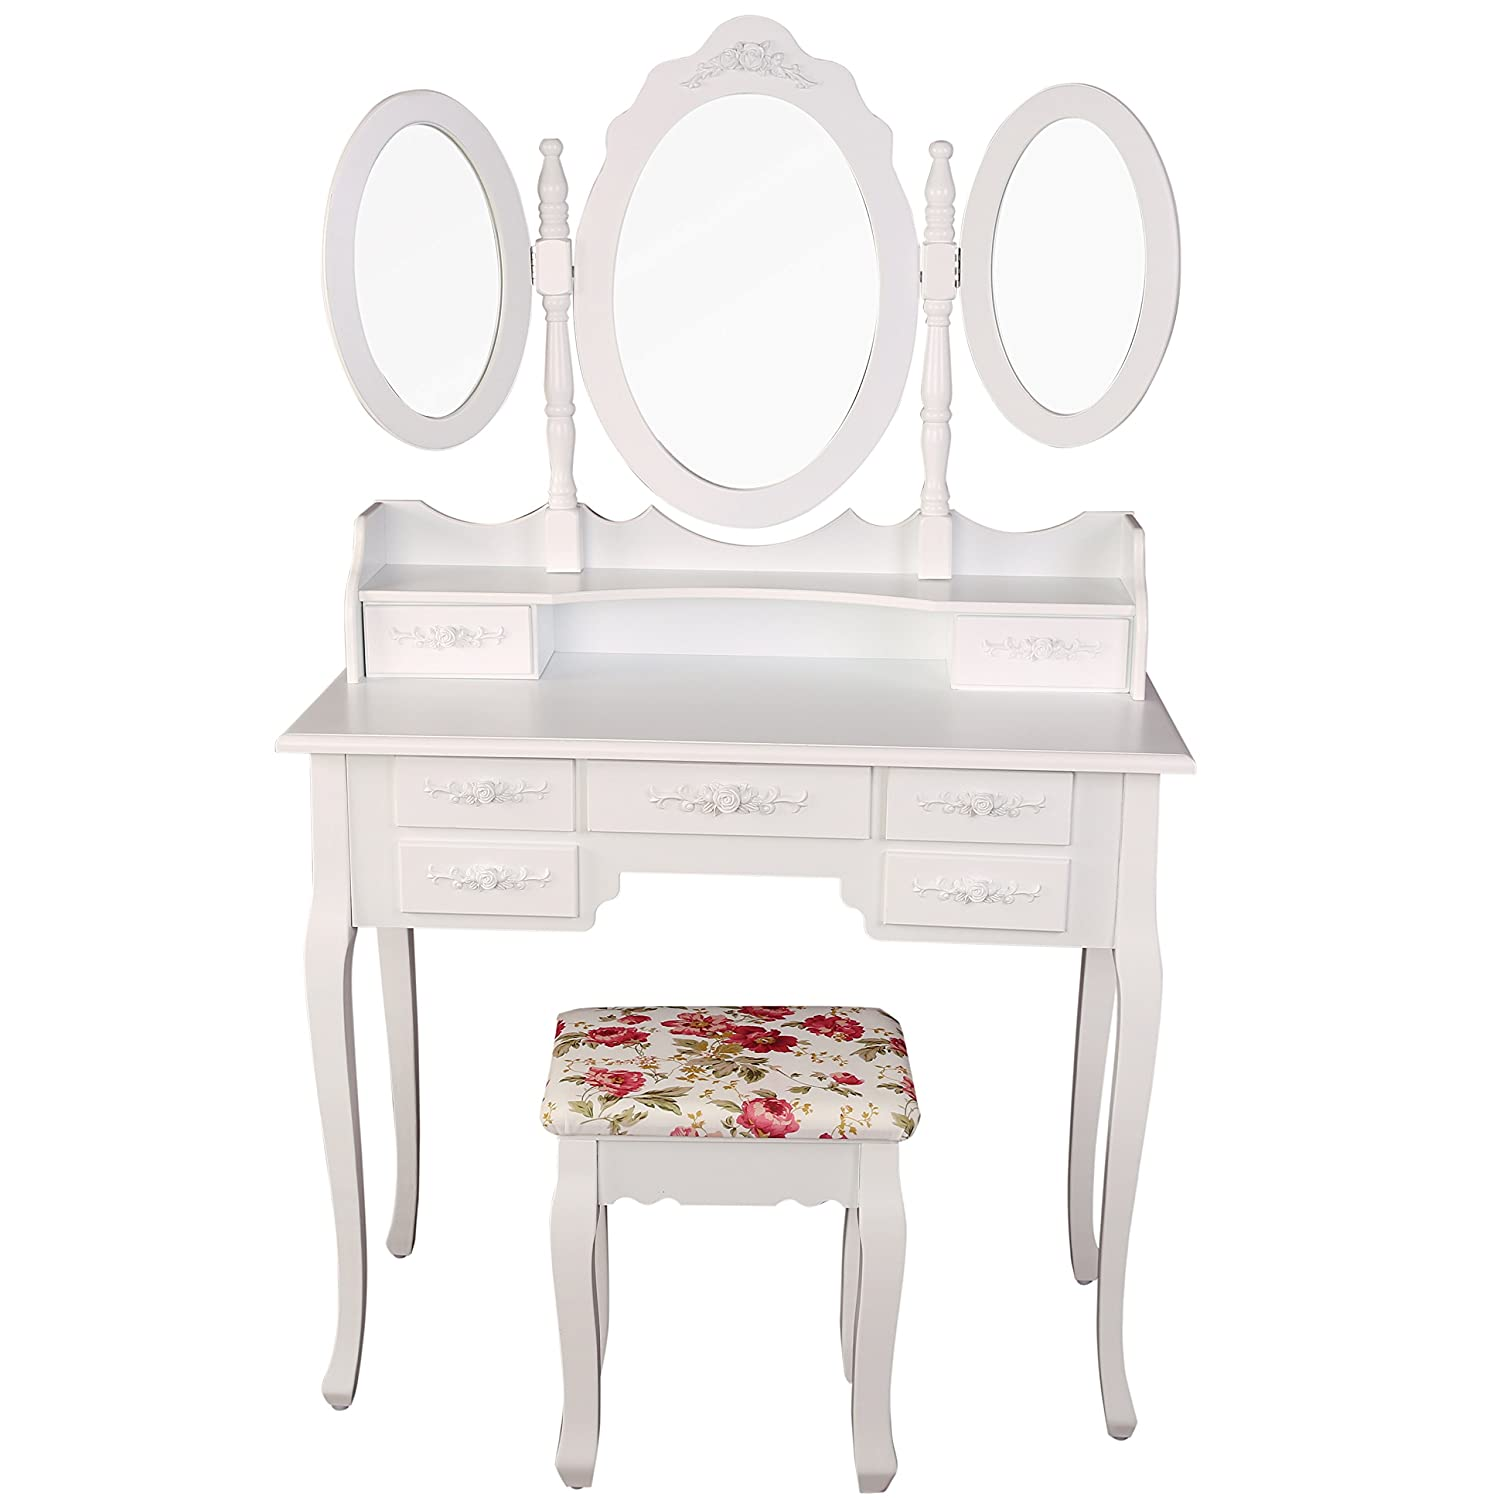 Commode Maquillage Free Magnifique Coiffeuse Table De Maquillage  # Commode Laquee Blanche Avec Tiroirs Rabattables